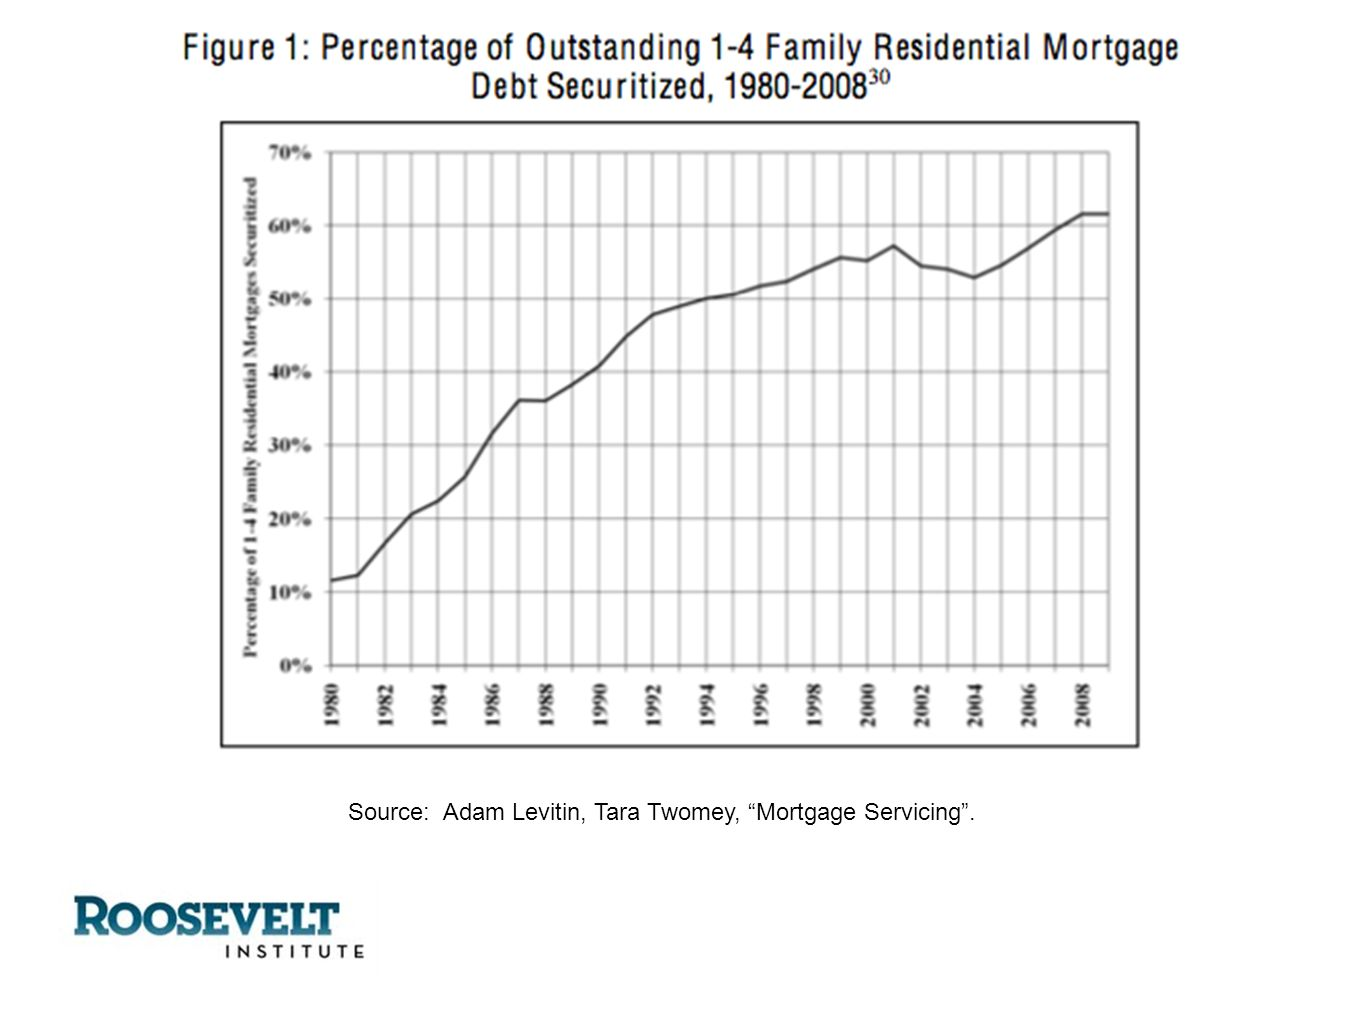 Source: Adam Levitin, Tara Twomey, Mortgage Servicing.